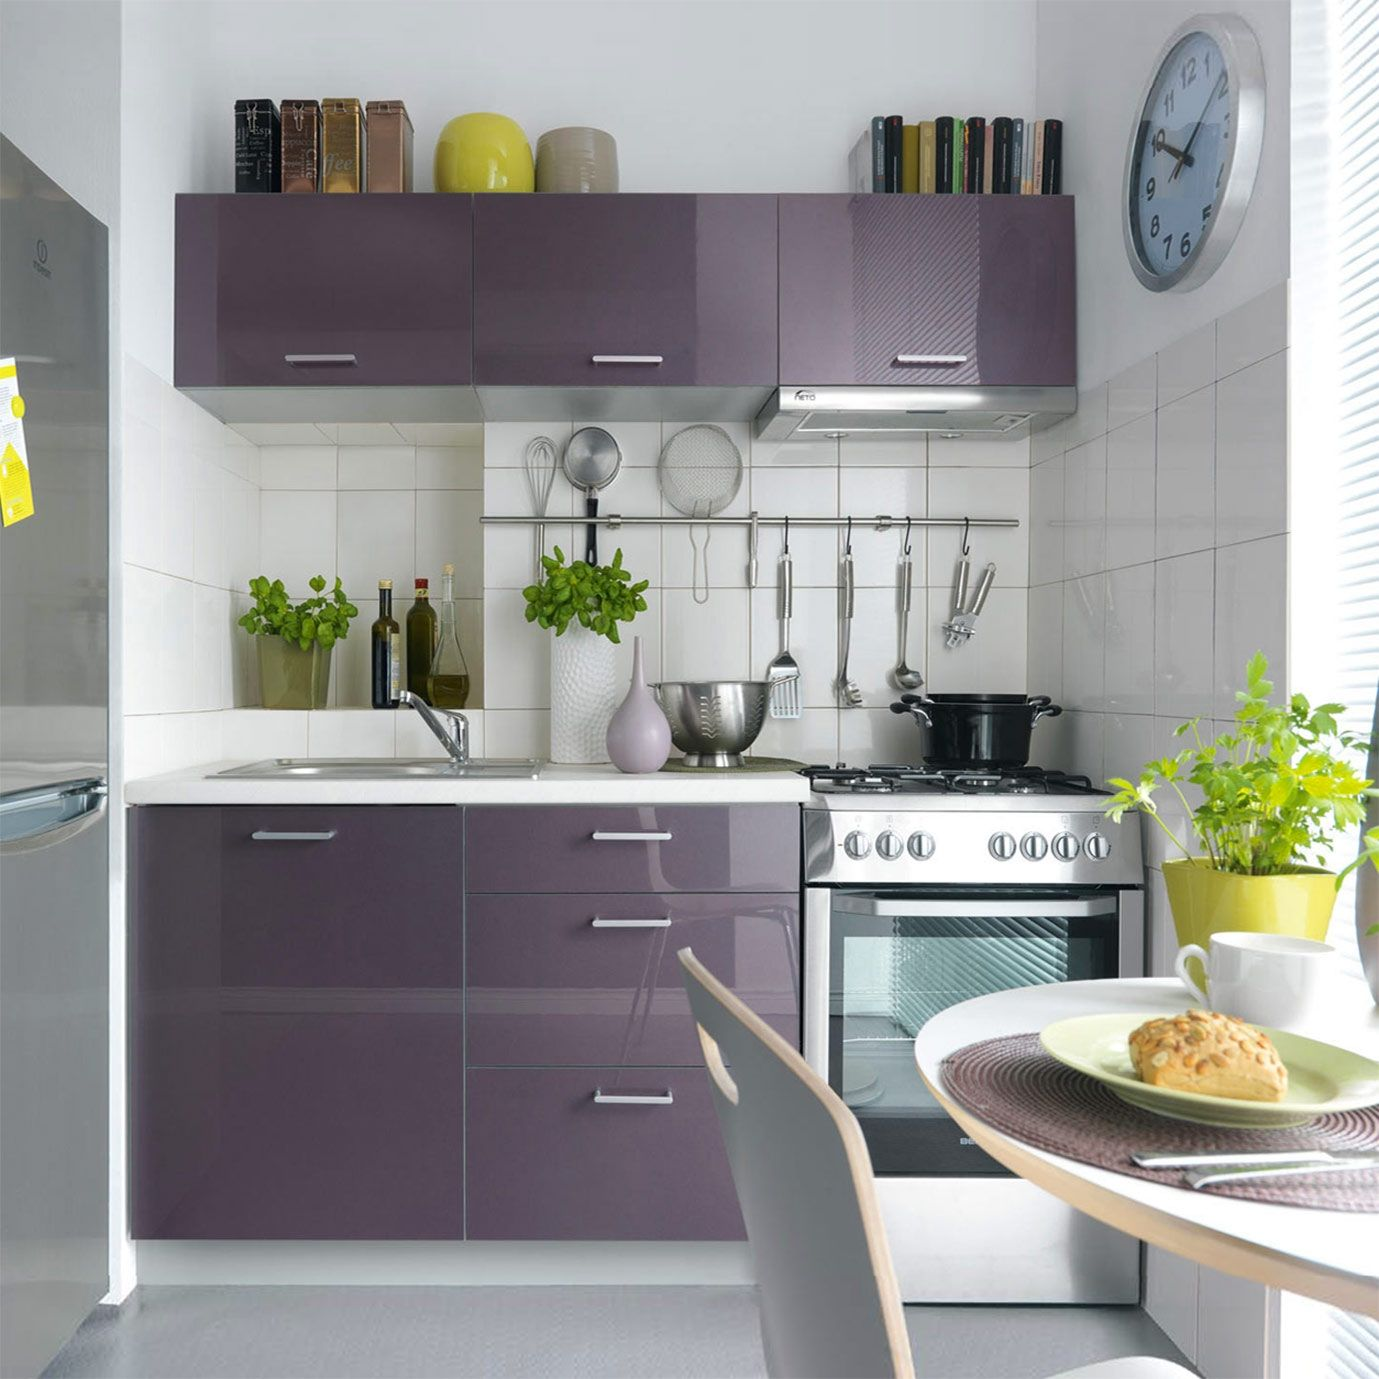 Diy network experts share 10 things you should know about kitchen cabinets. 42 Das Beste Von Küchenzeile 200 Cm (With images ...